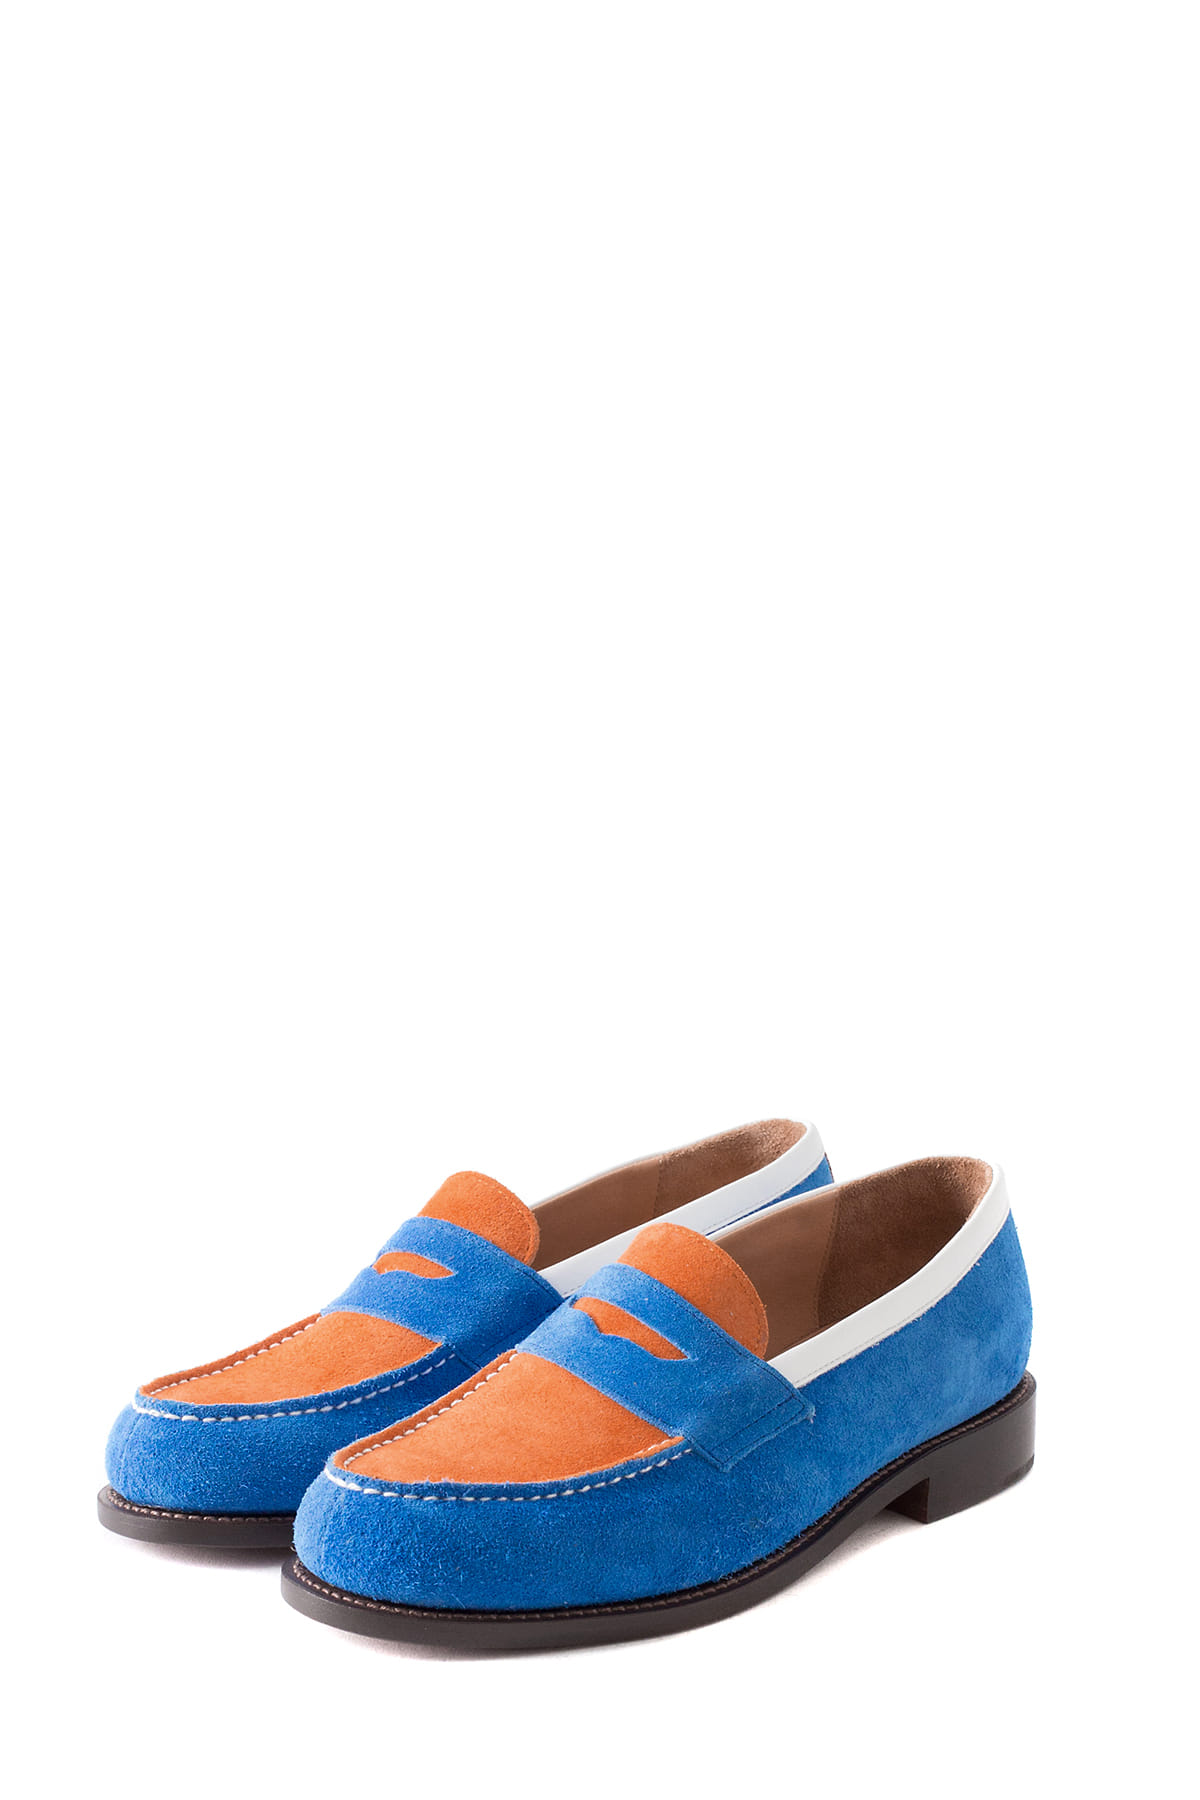 Hender Scheme : Typical Color Exception Loafer (Blue)